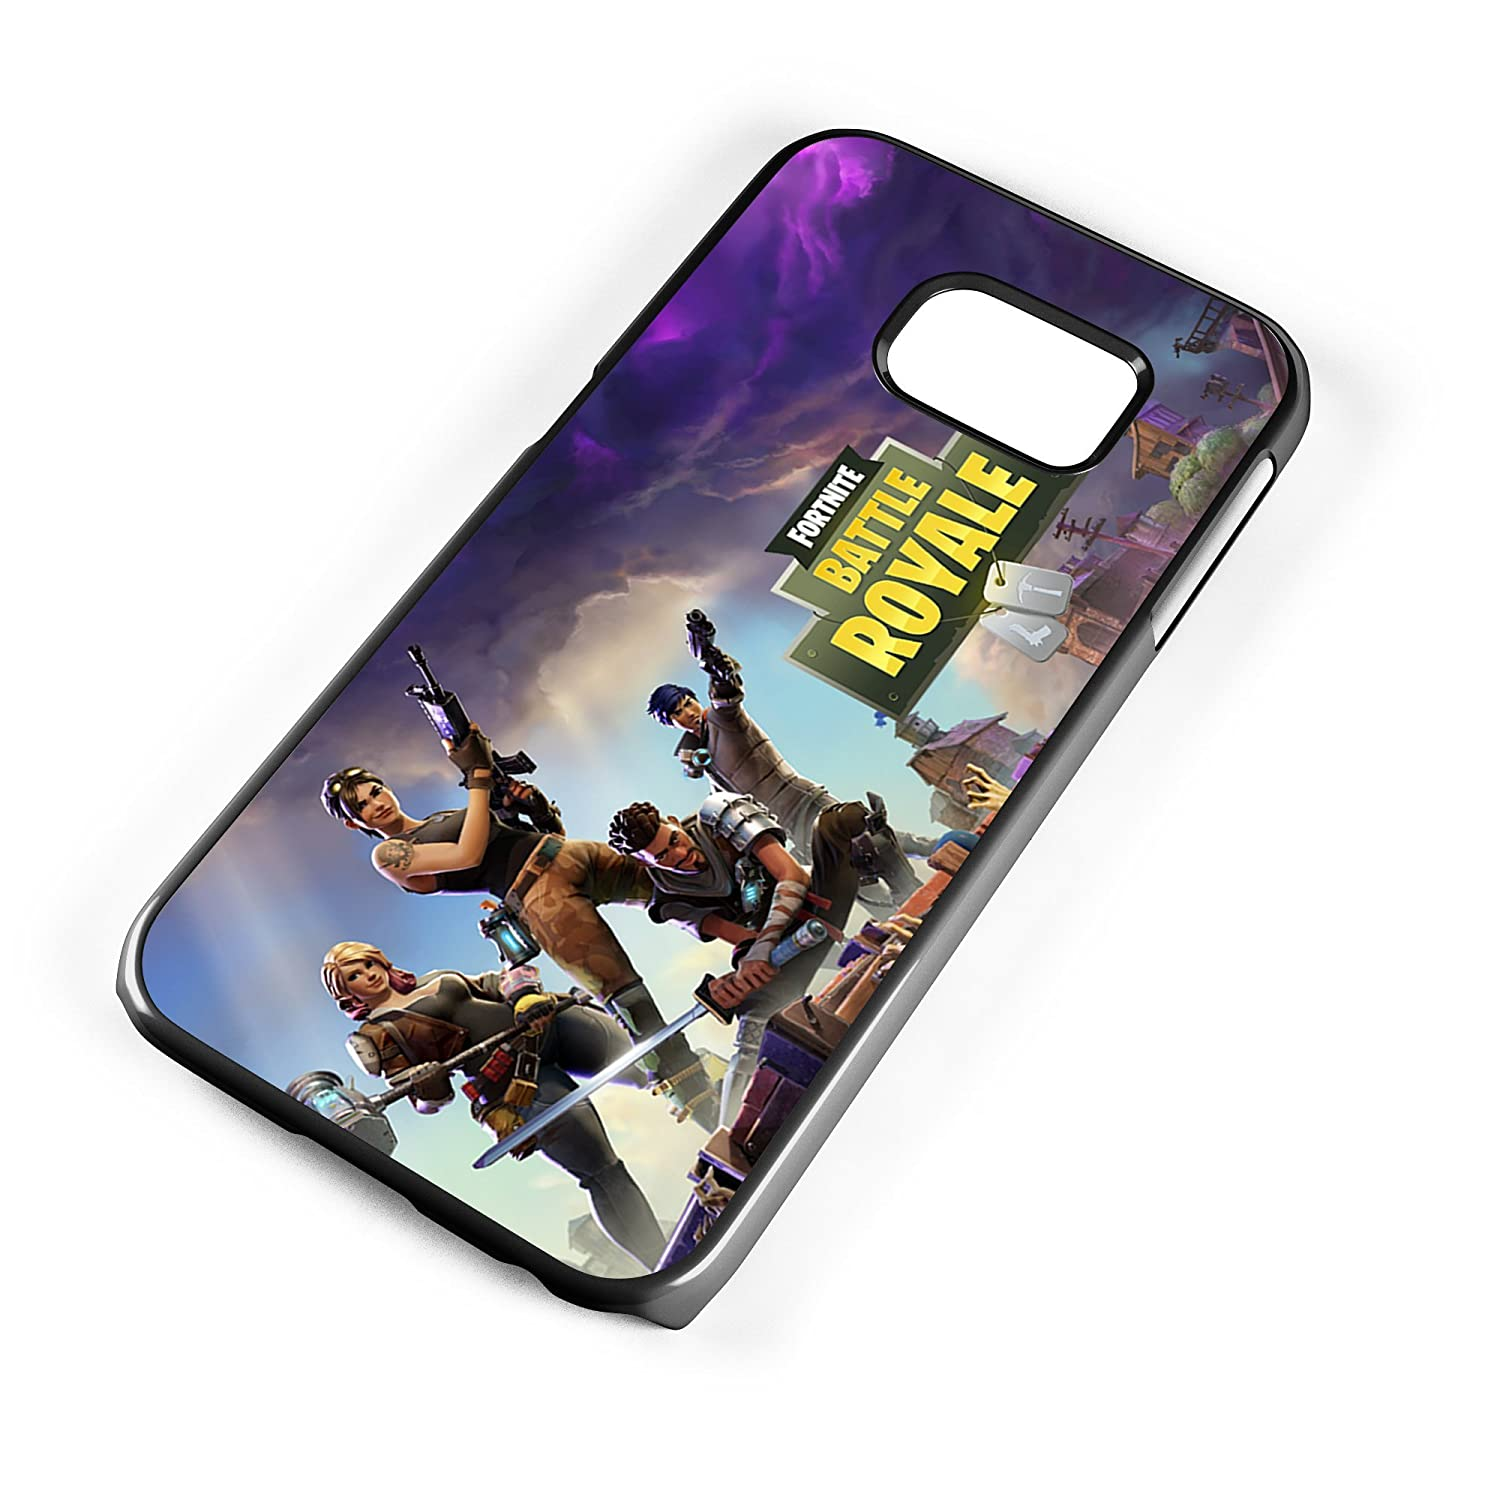 phone case video game fortnite cover samsung s4 s4 mini s5 s6 s6 edge s7 s7 edge s8 s8 a5 j5 j7 amazon co uk handmade - is fortnite available on samsung s6